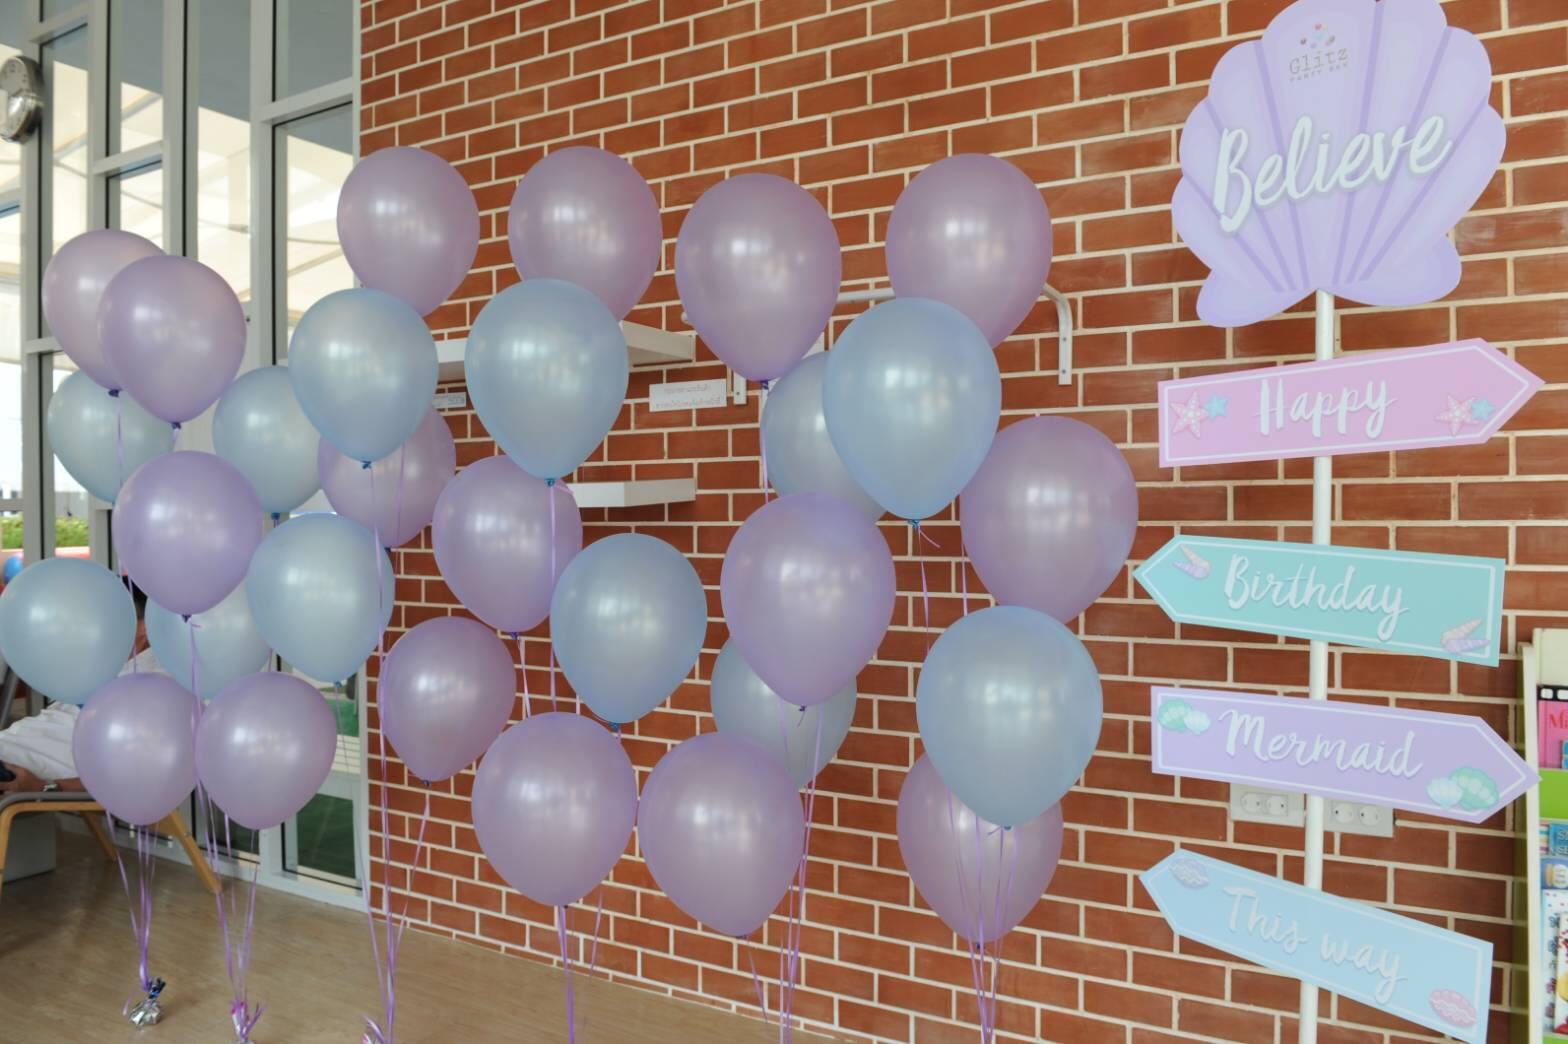 Surprise your girls with favorite birthday party celebration in Mermaid and Under the Sea theme - let us do the backdrop, balloons, bouncy castle and all you want